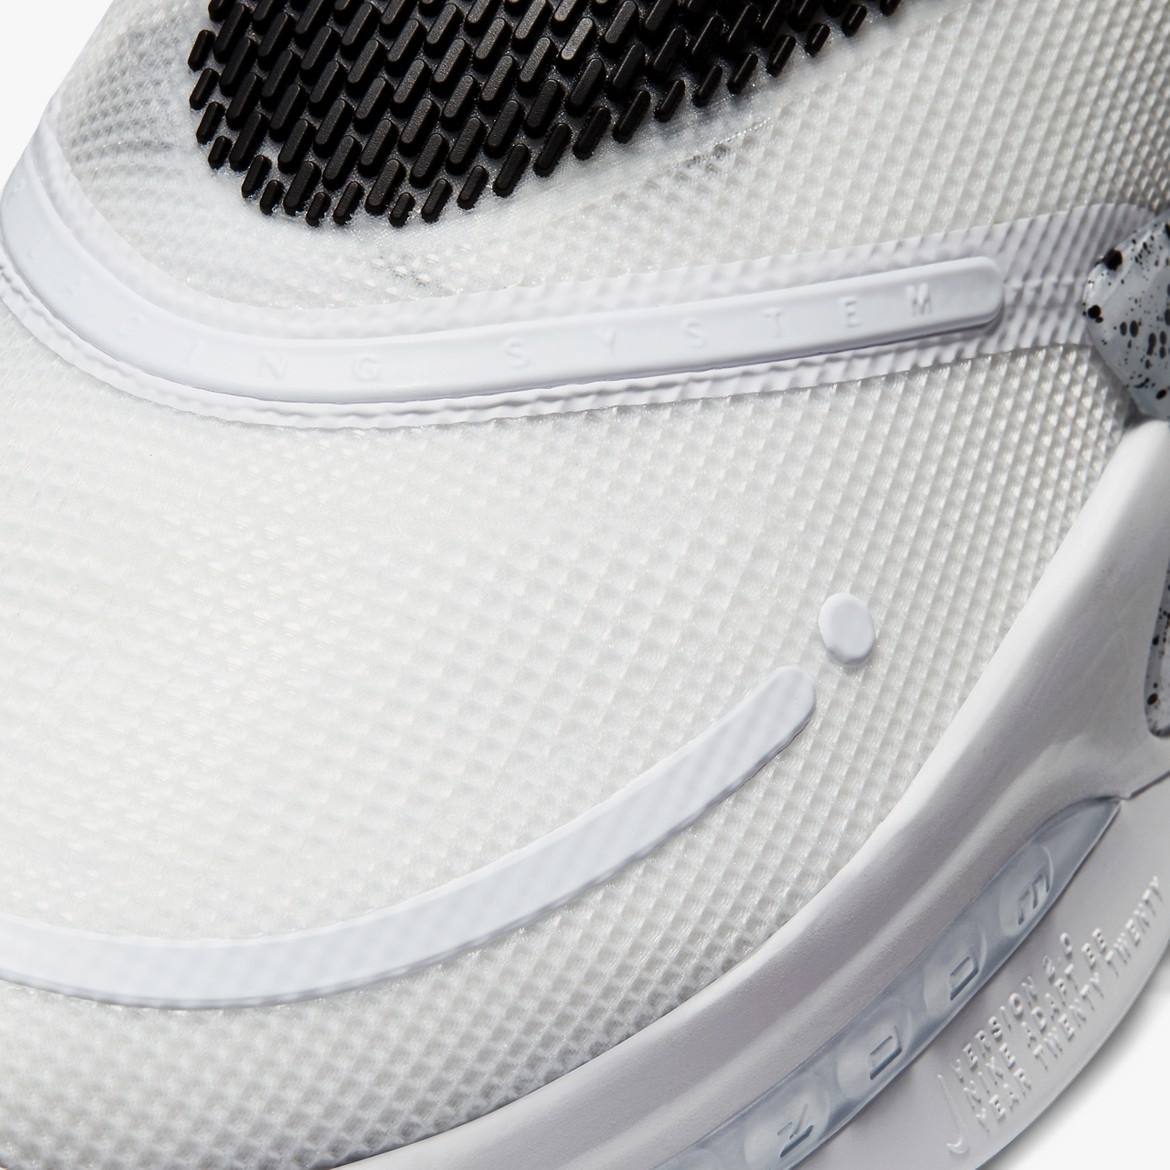 Nike Adapt Bb 2 0 Oreo Official Release Date Hypebeast